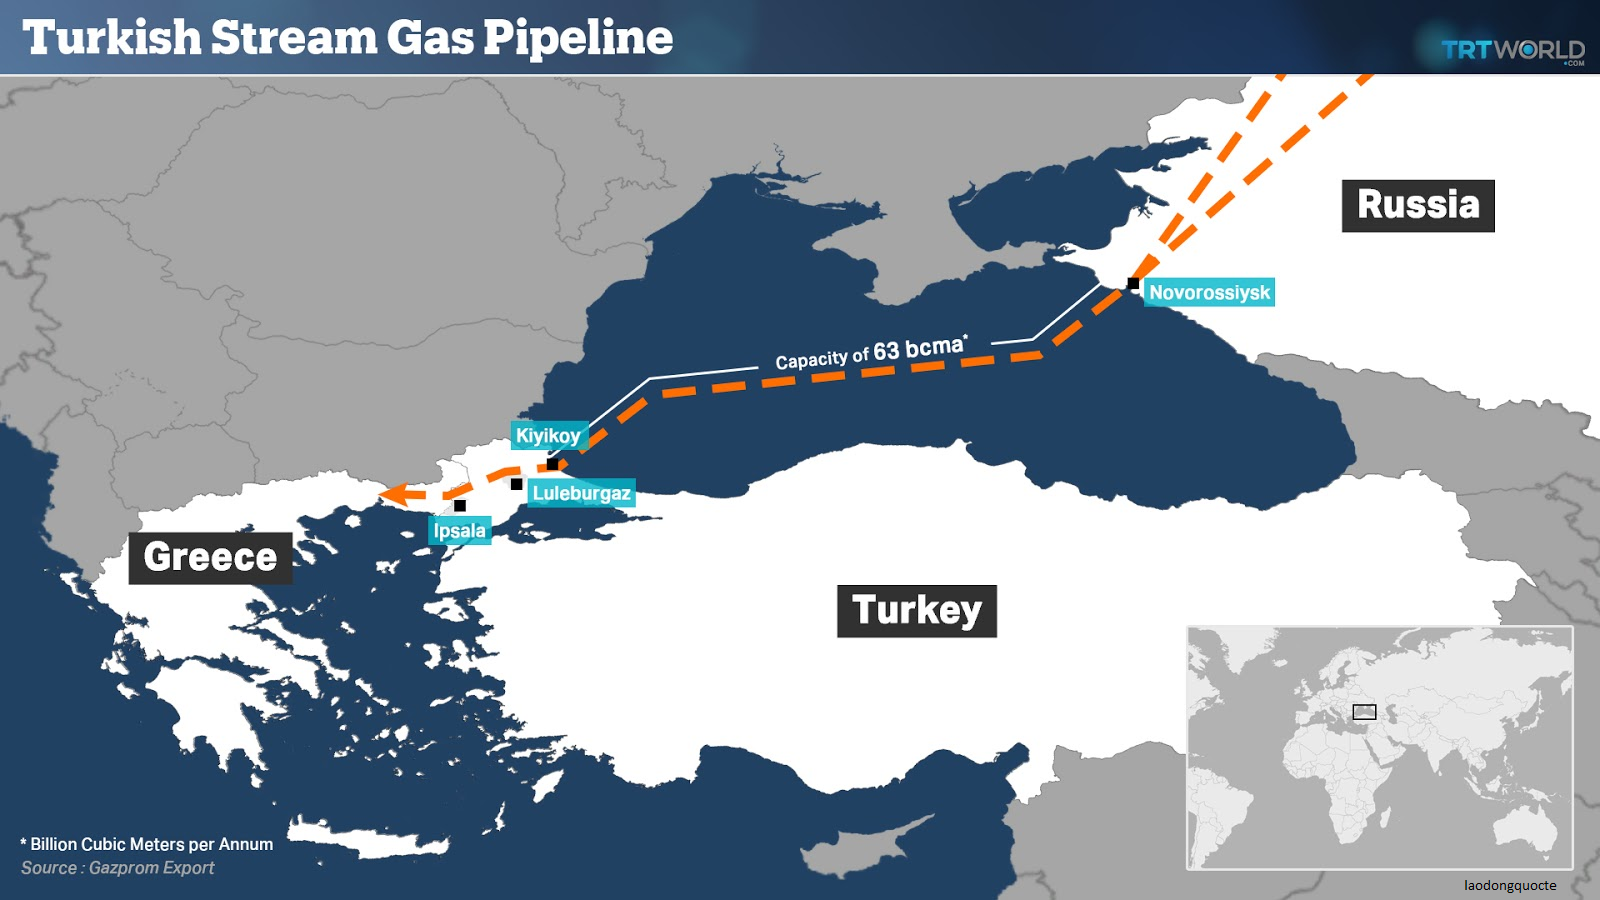 1448610325-1448609385-turkish_stream_gas_pipeline